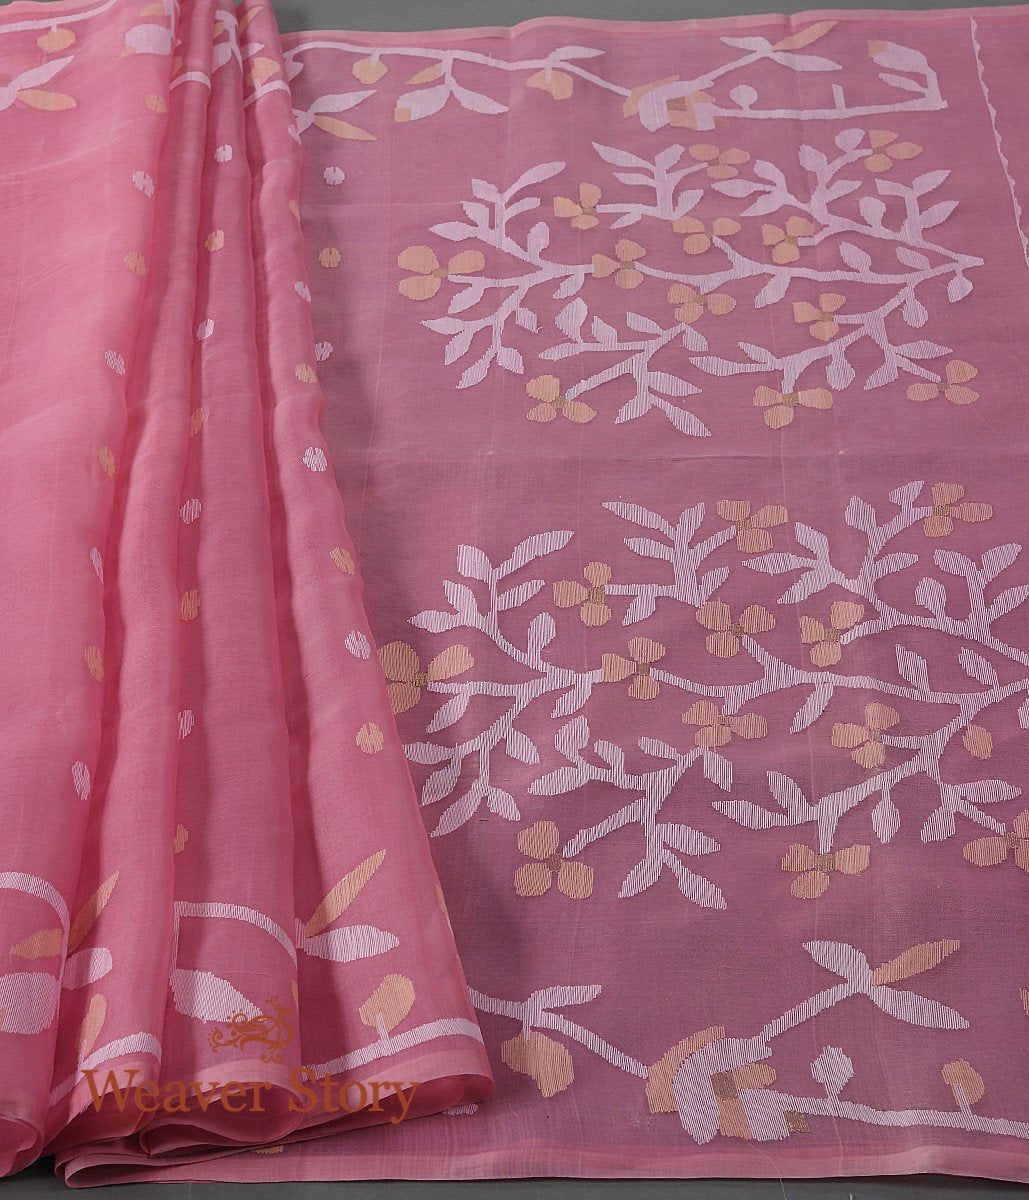 Handwoven Strawberry Pink Dhakai Jamdani Saree with White Booti and Heavy Pallu